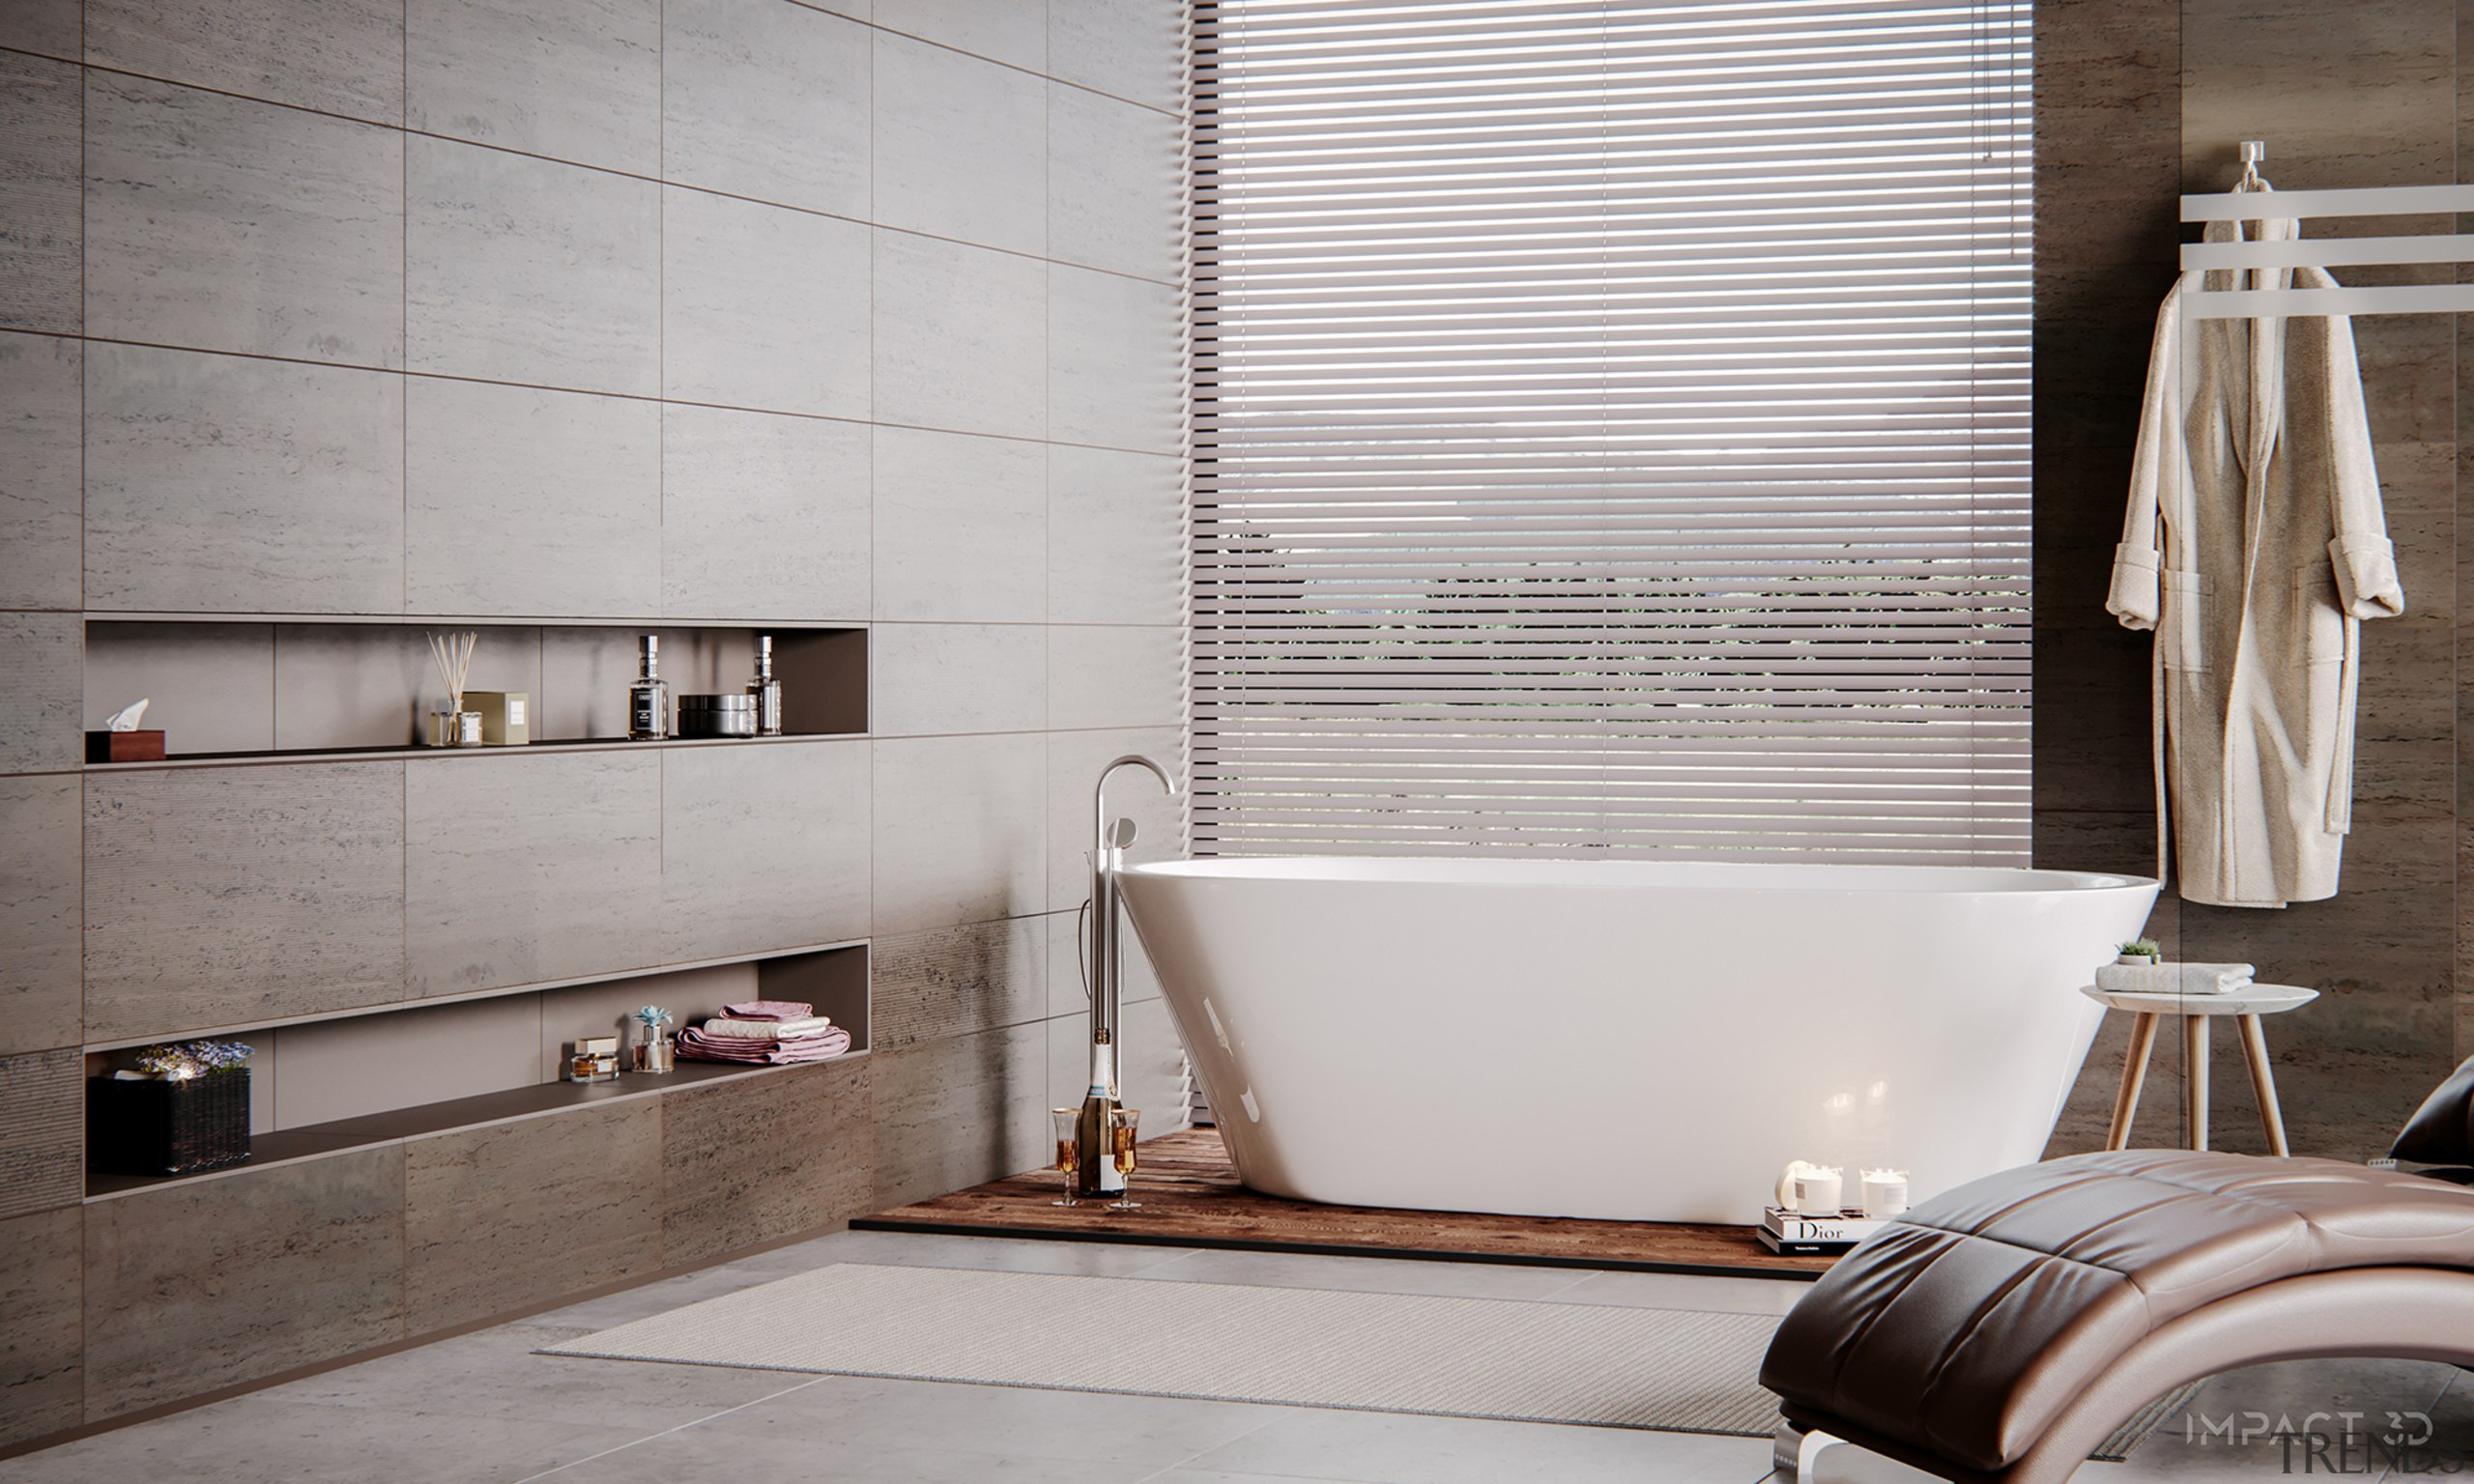 4 Clever Ways to Curate a Luxury Bathroom bathroom, beige, building, ceiling, ceramic, floor, flooring, furniture, home, house, interior design, material property, plumbing fixture, room, tile, wall, gray